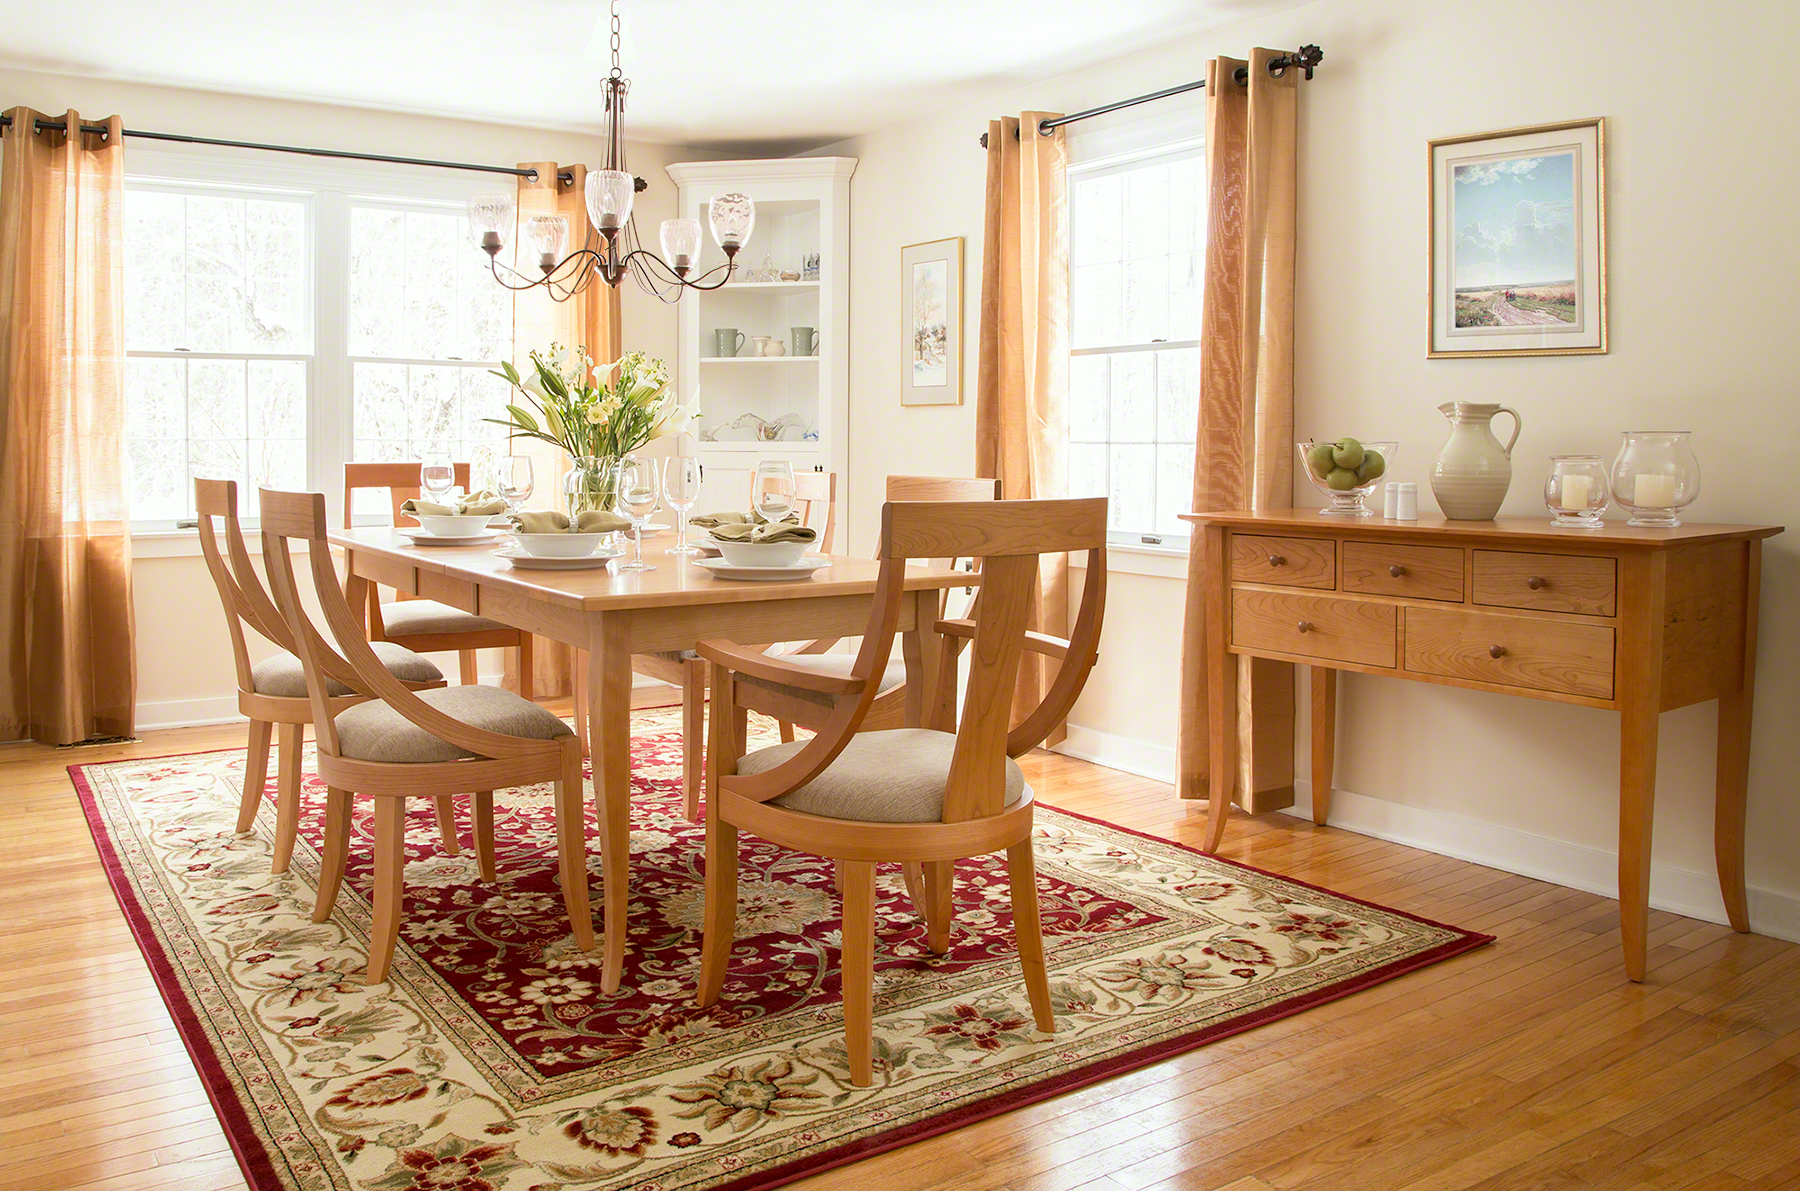 Wood Dining Furniture | Top Score on the 2020 Wood Furniture Scorecard